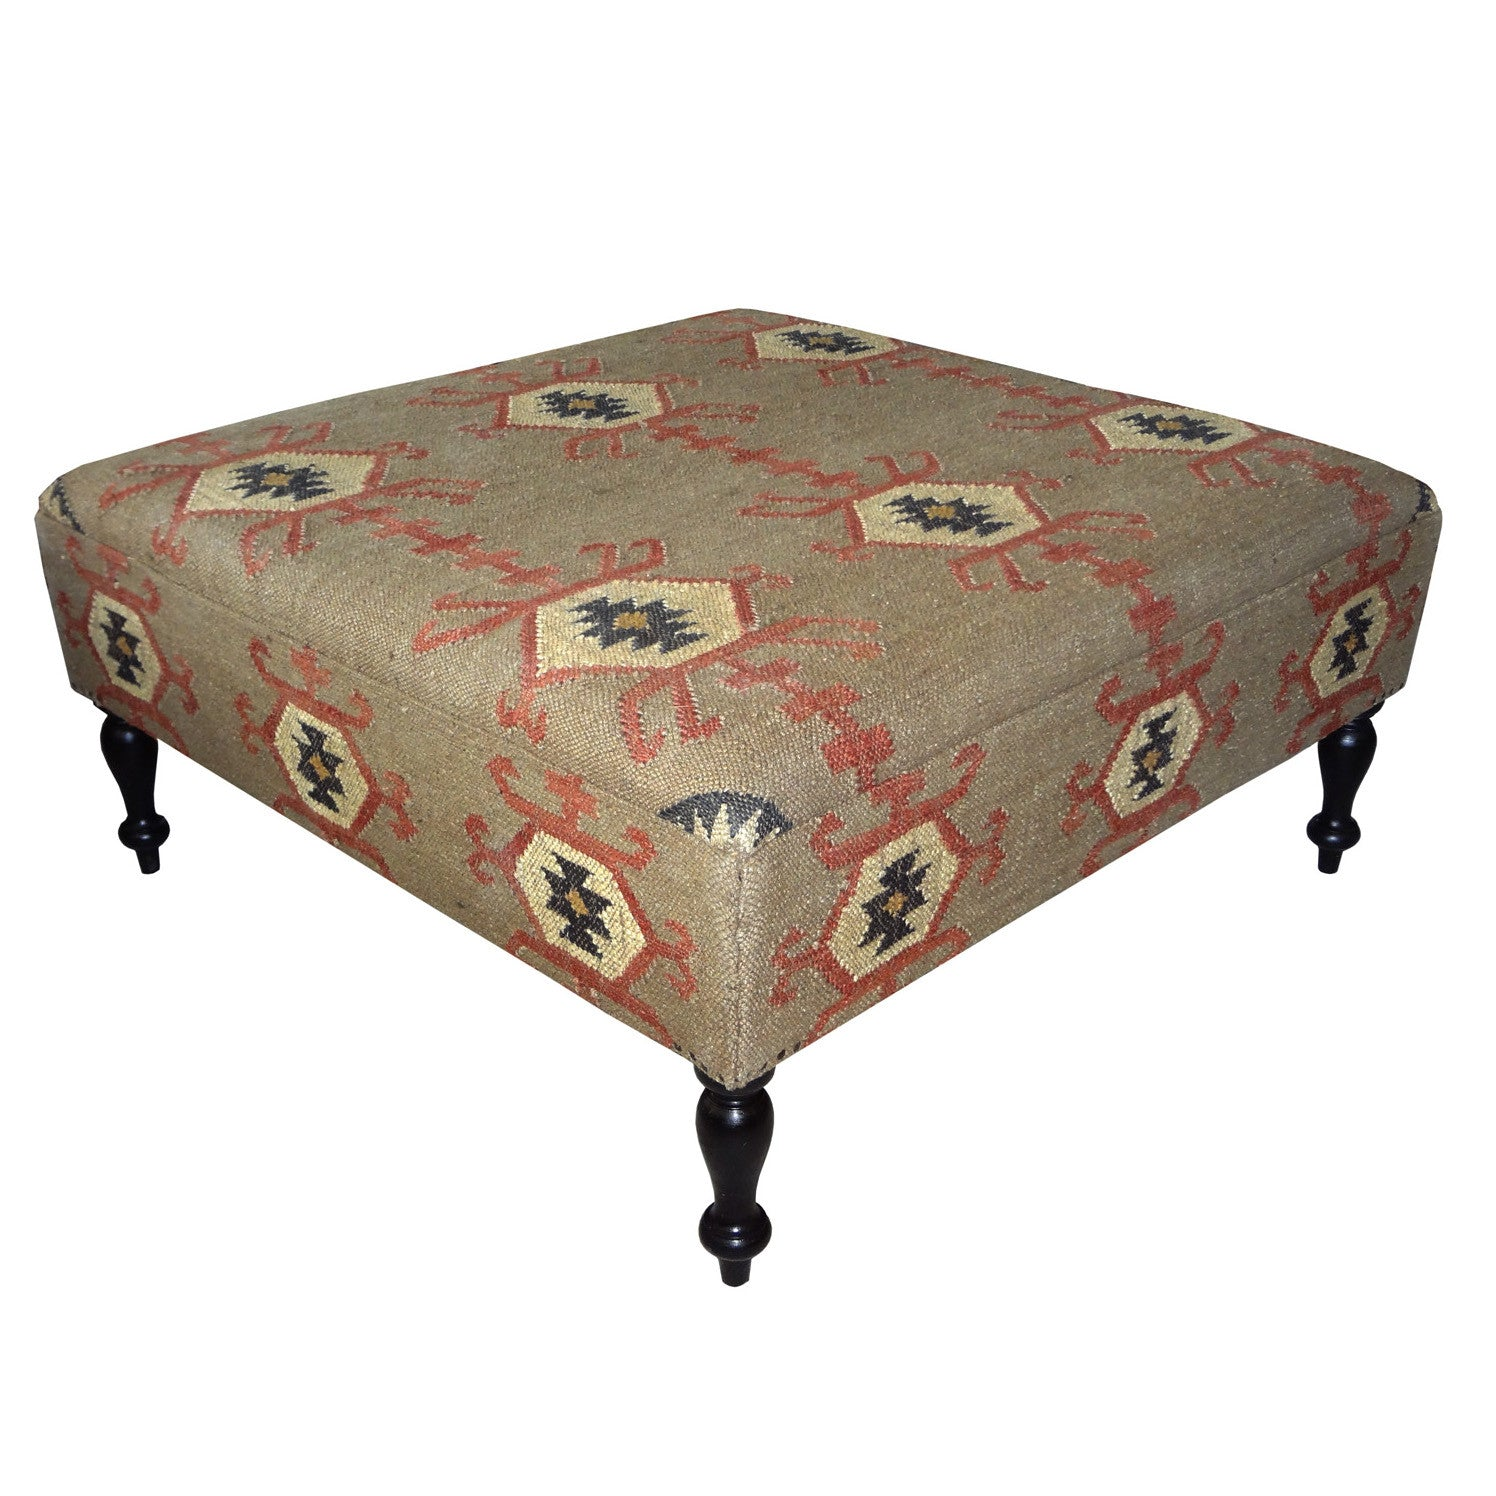 Jute Ottoman Coffee Table Tan & Red